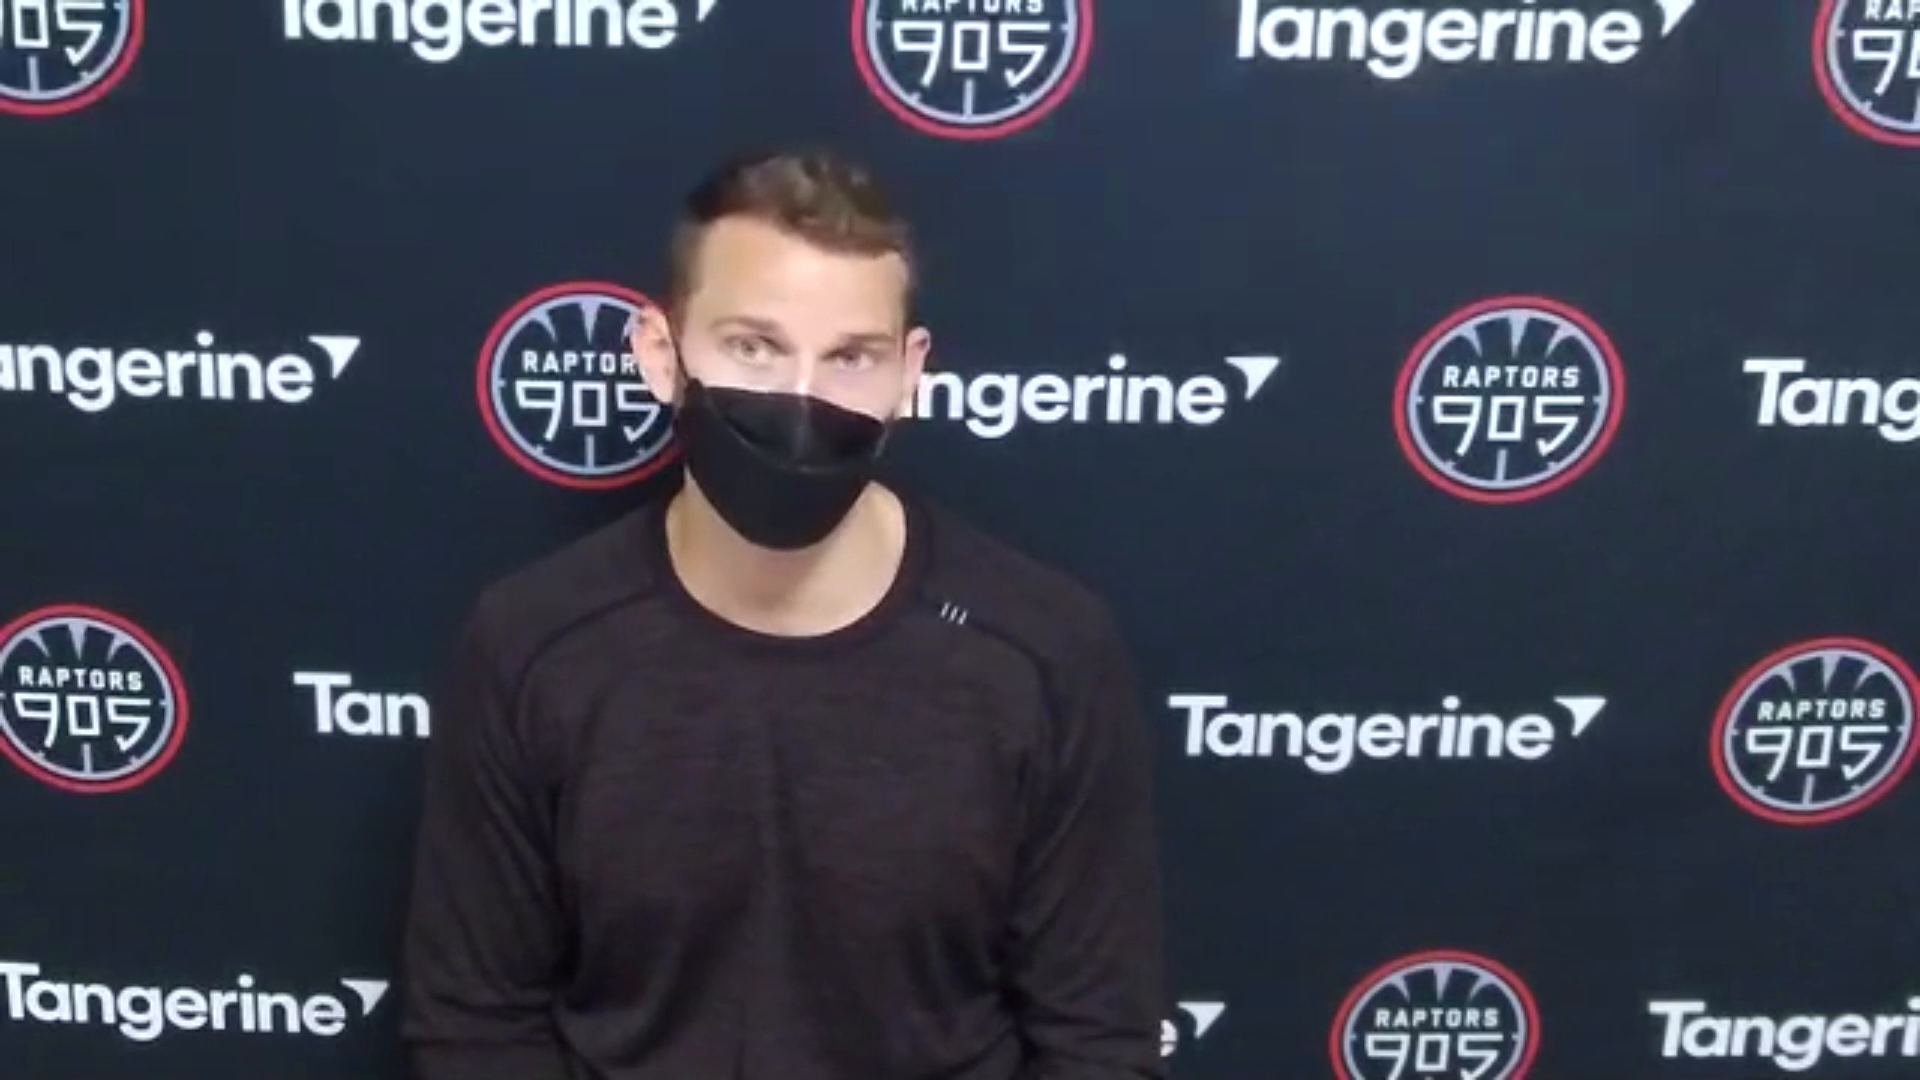 Raptors 905 Post Game: Nik Stauskas - February 26, 2021